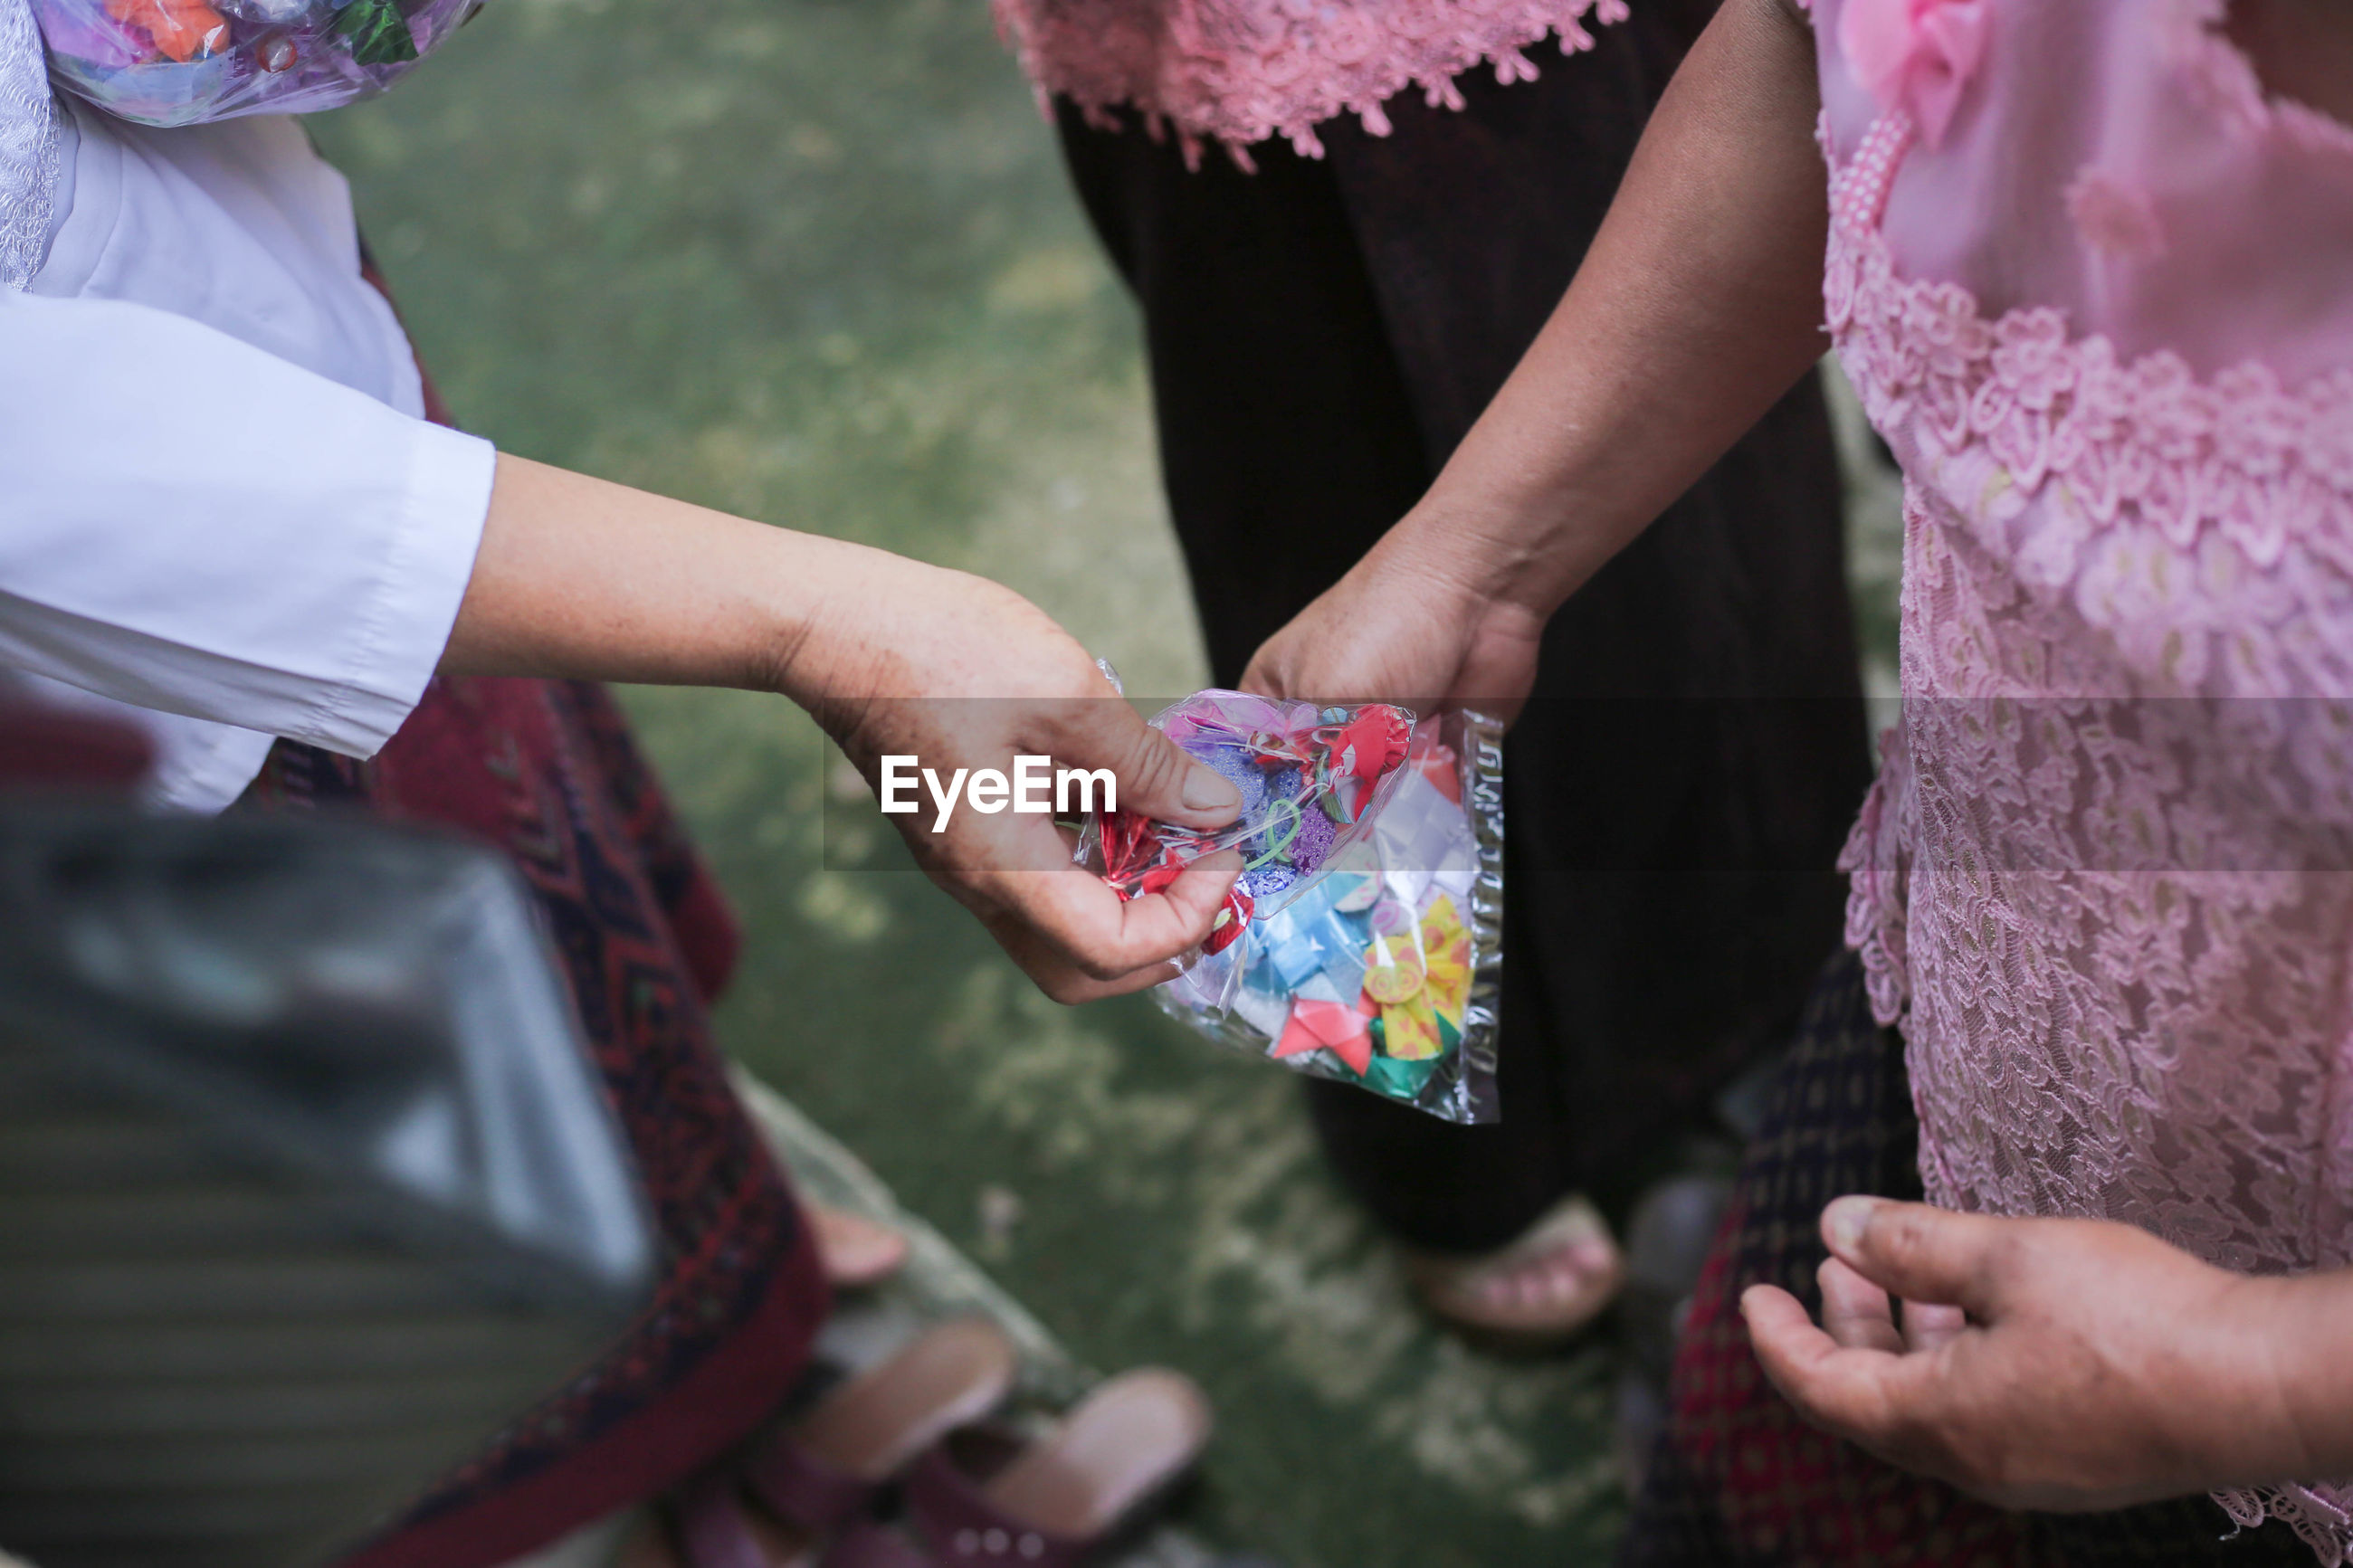 Cropped image of woman giving plastic bag to friend